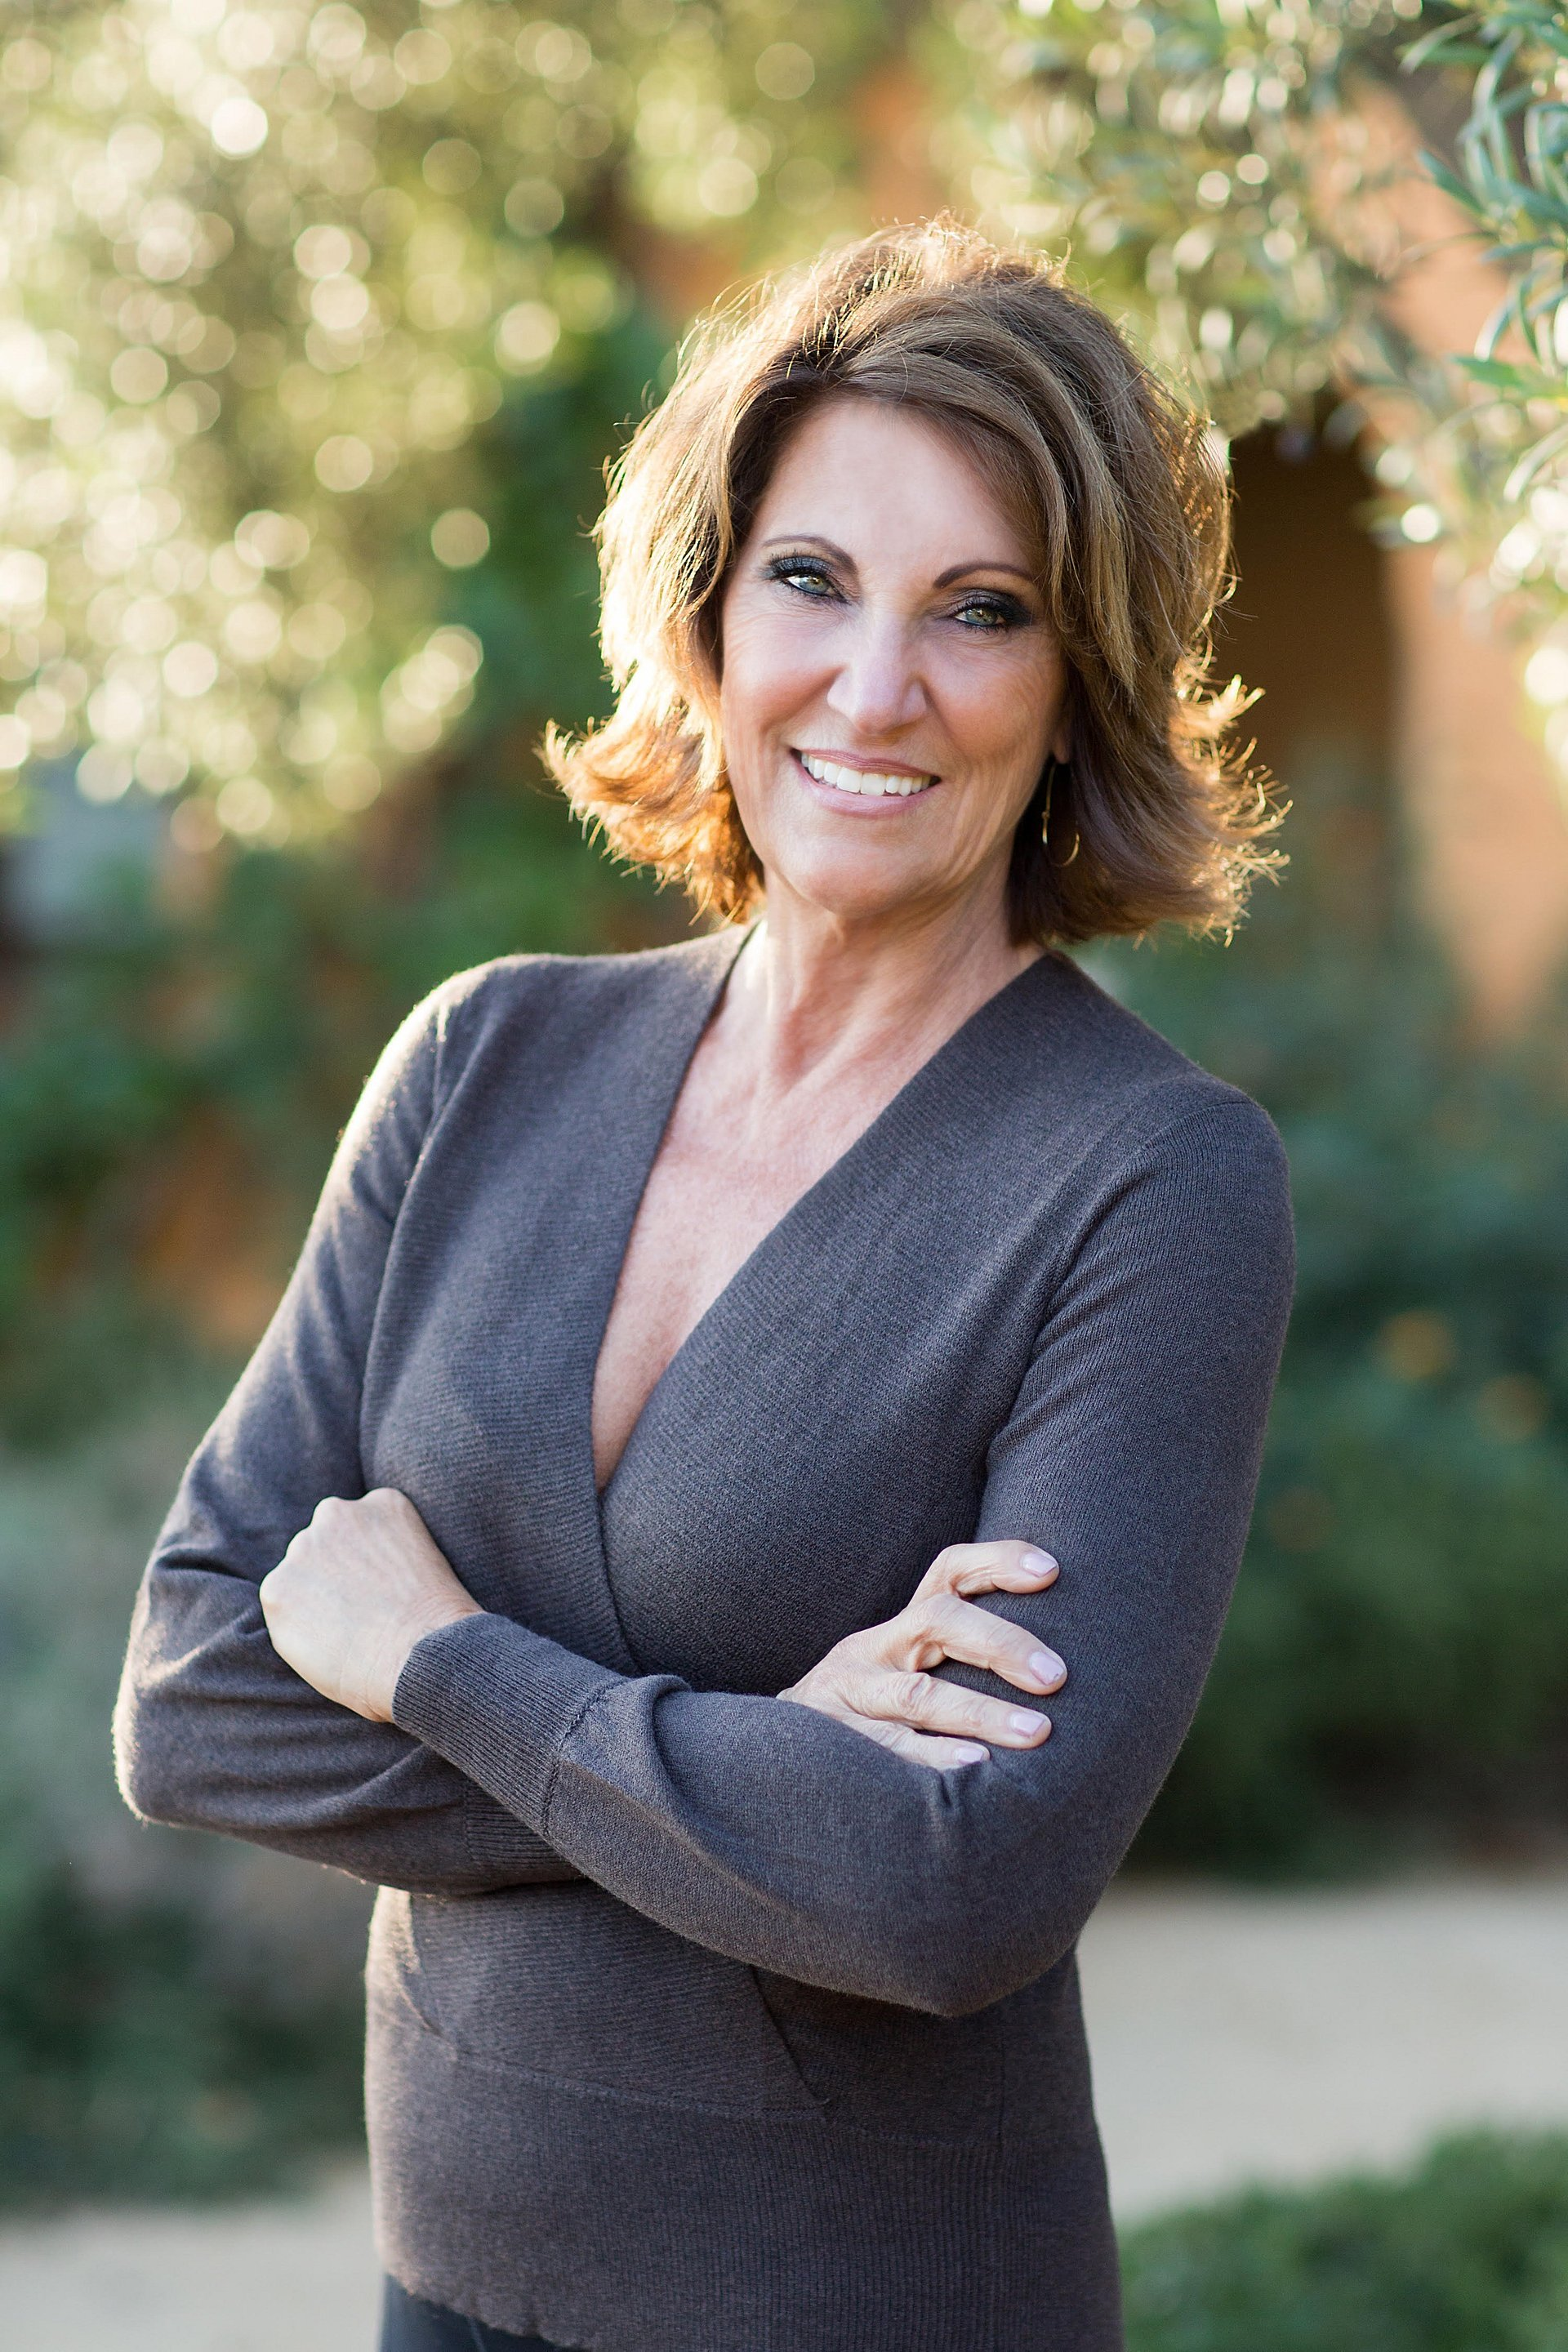 Coldwell Banker's Lori Bowles Named Carpinterian of the Year for 2019 by the Carpinteria Valley Chamber of Commerce